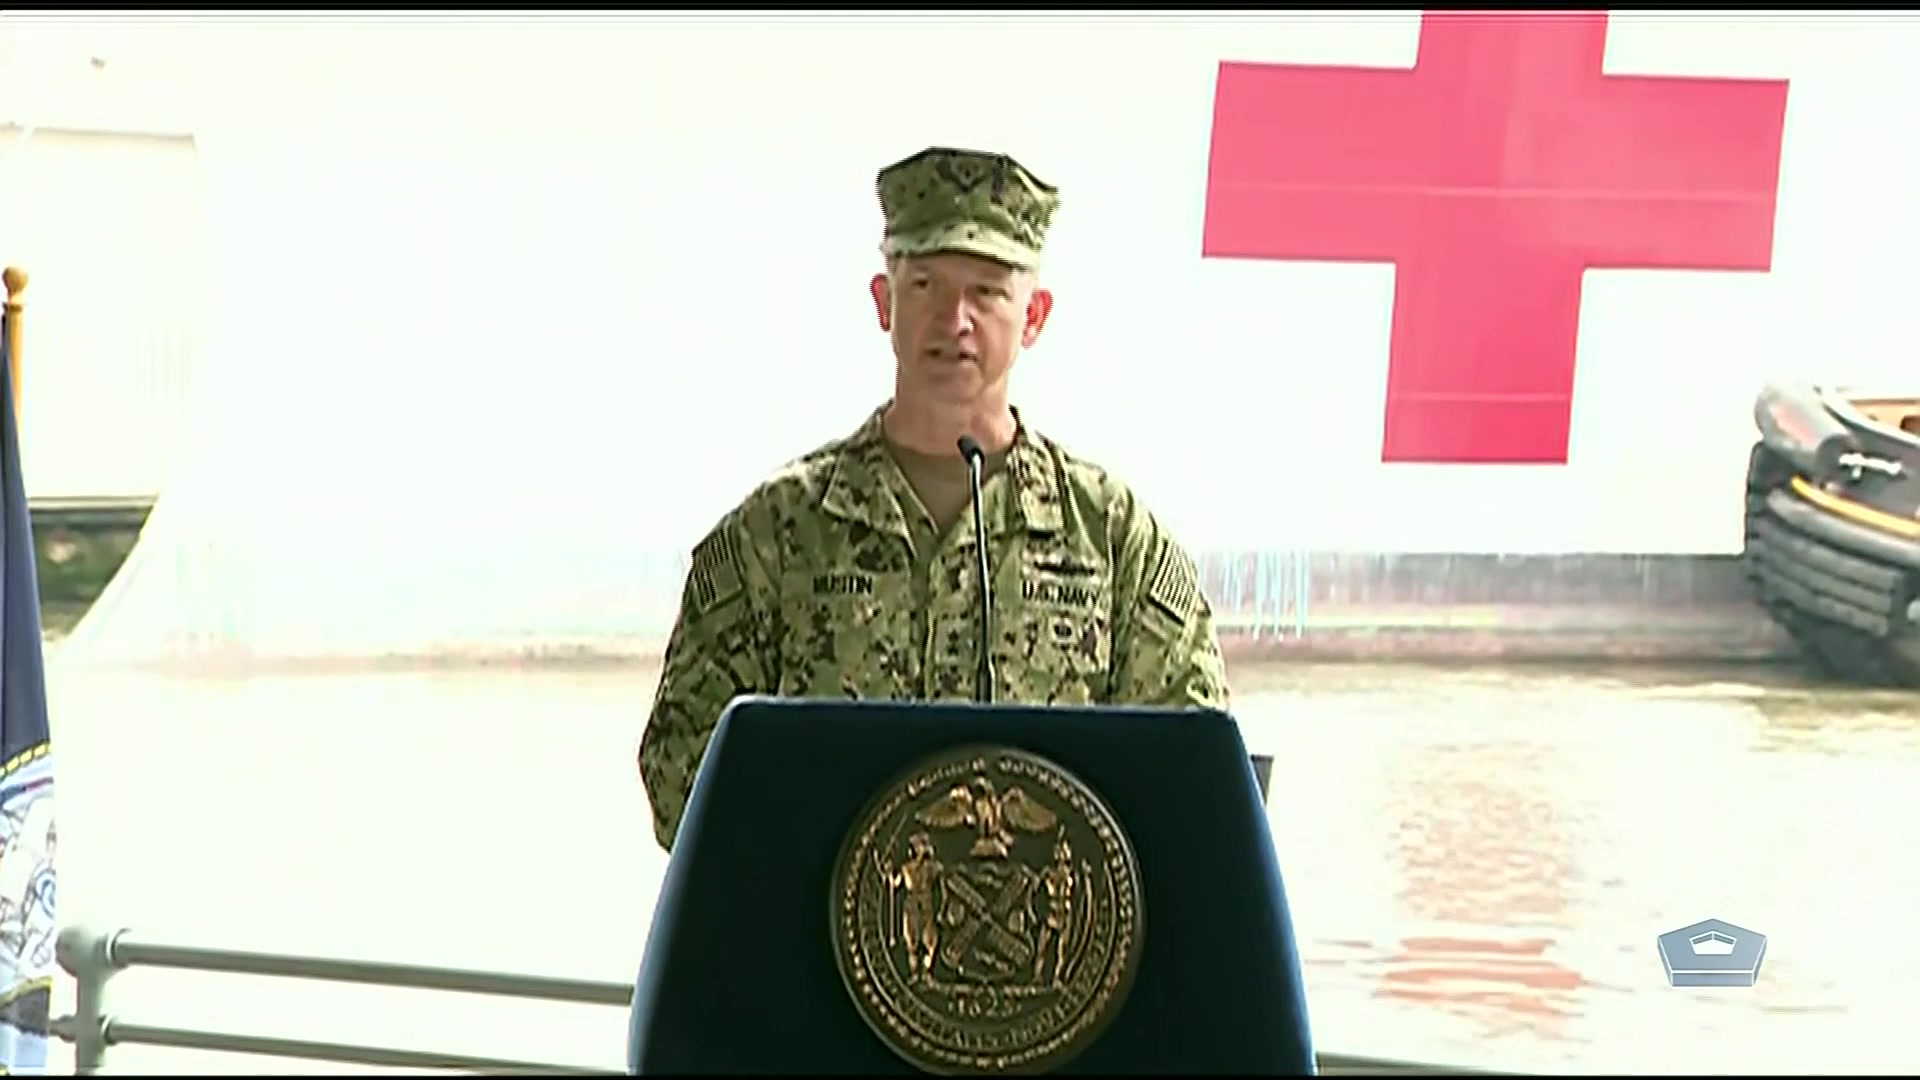 A sailor speaks at a lectern.